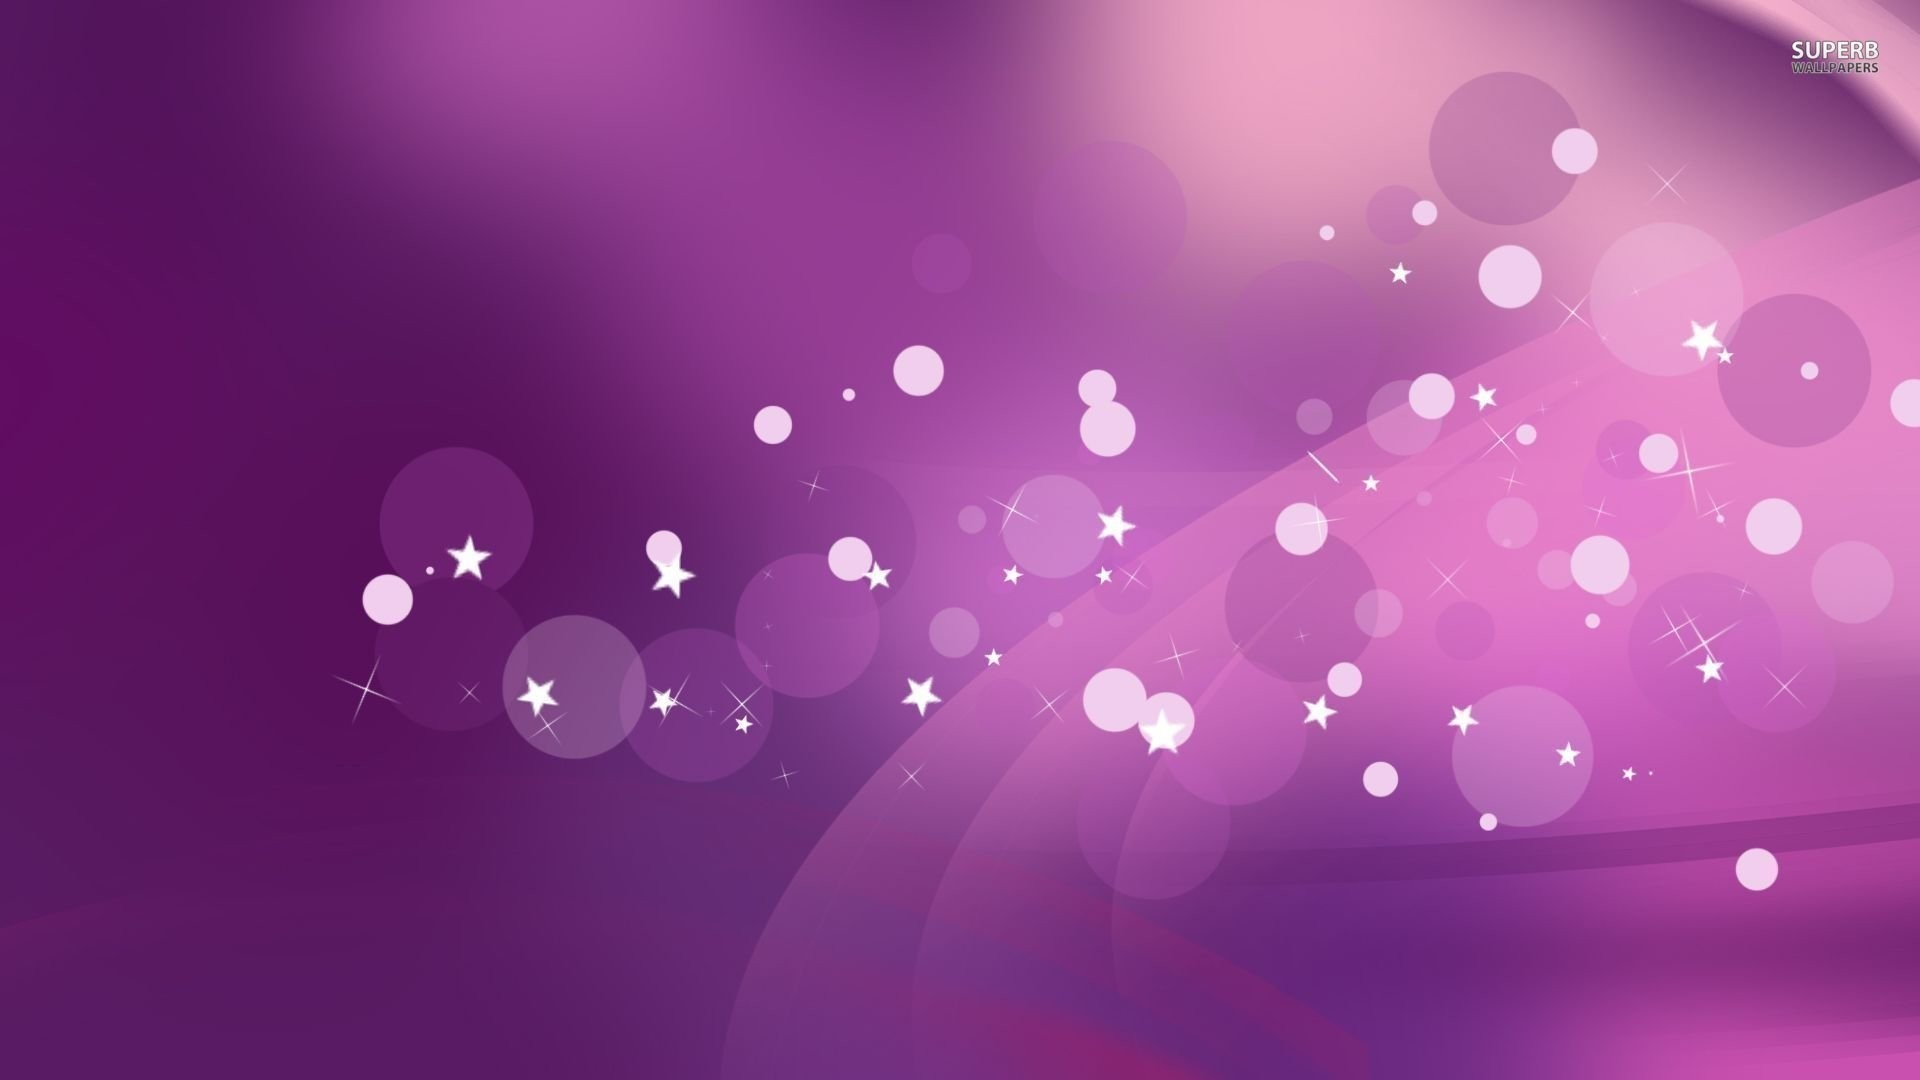 Res: 1920x1080, Pink And Purple Star Backgrounds Inspirationa Purple Star Wallpaper 61  Images